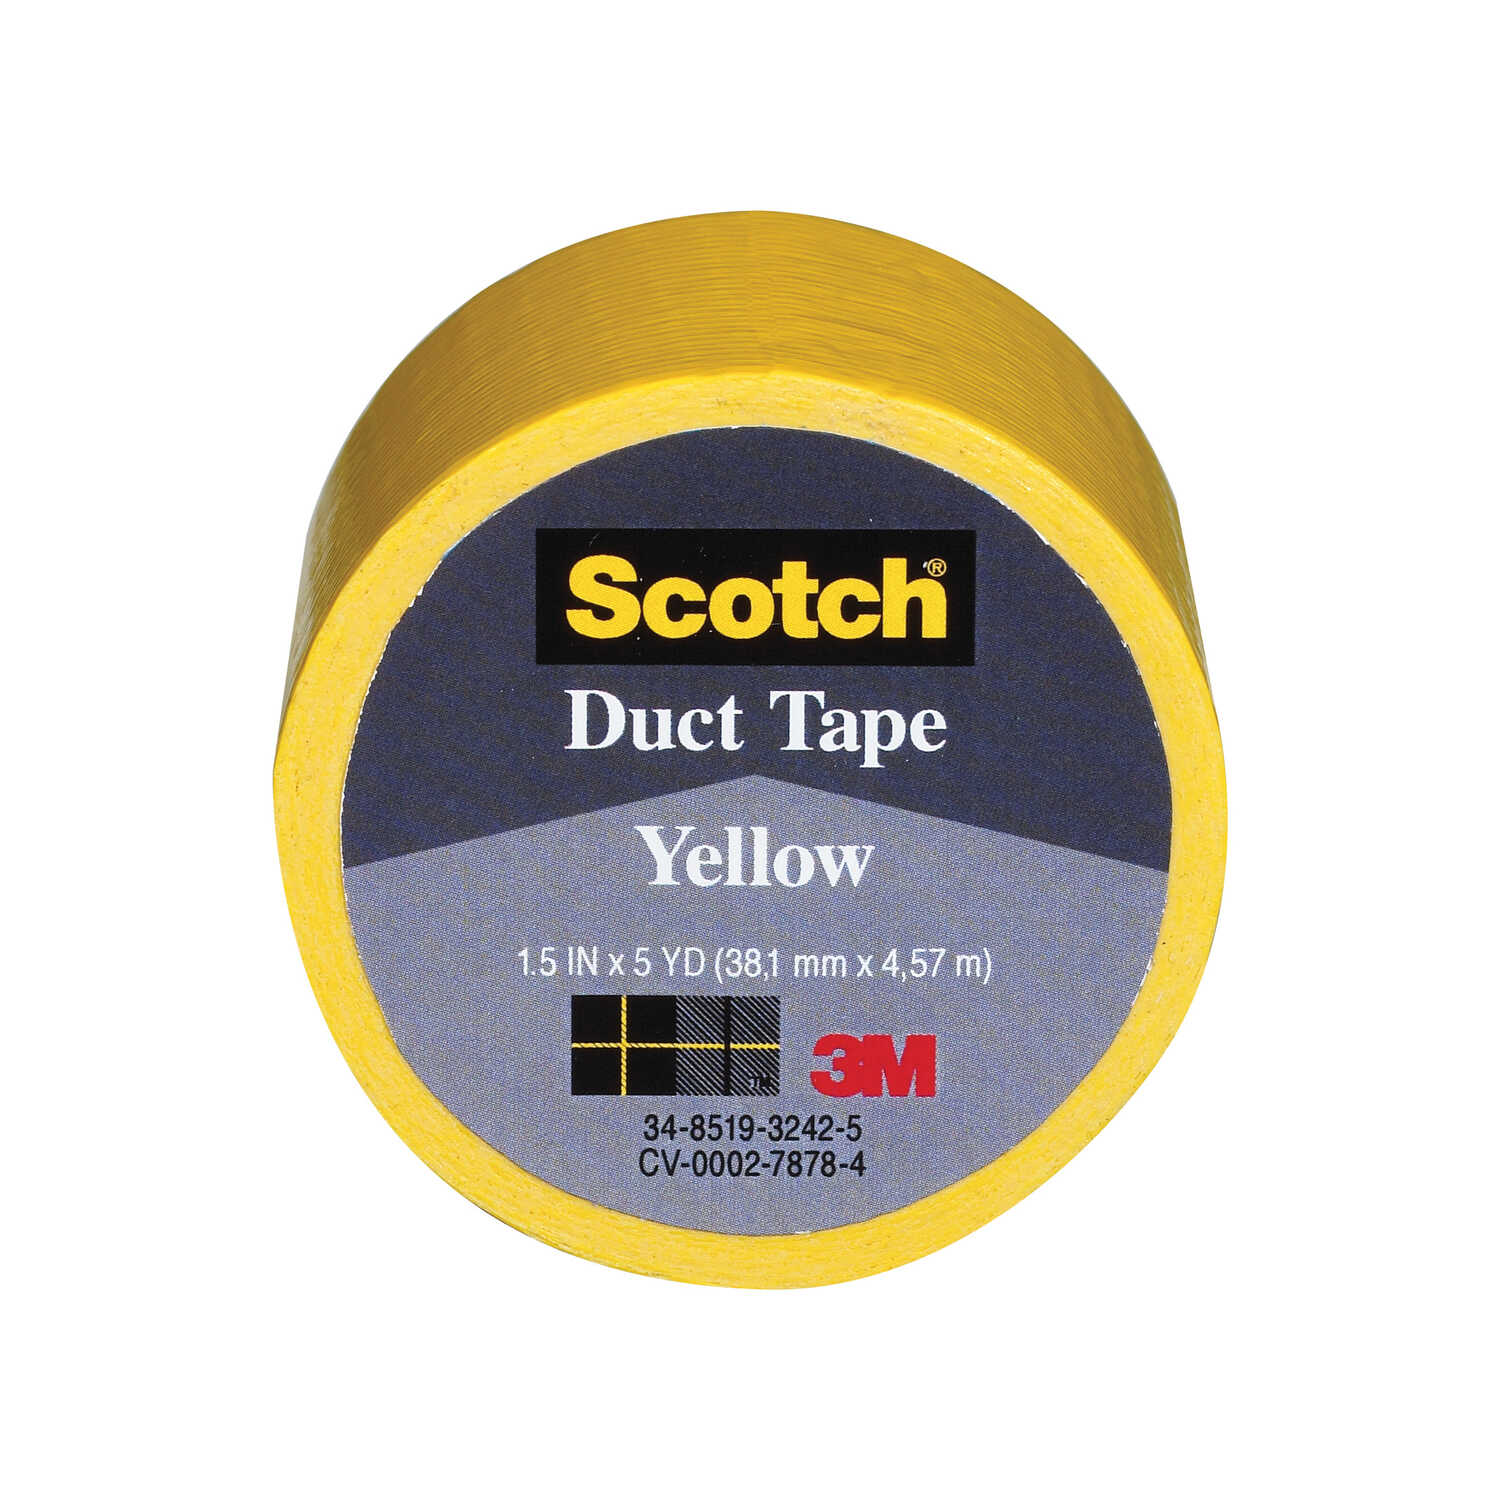 Scotch  170  L x 1.5  W Duct Tape  Yellow